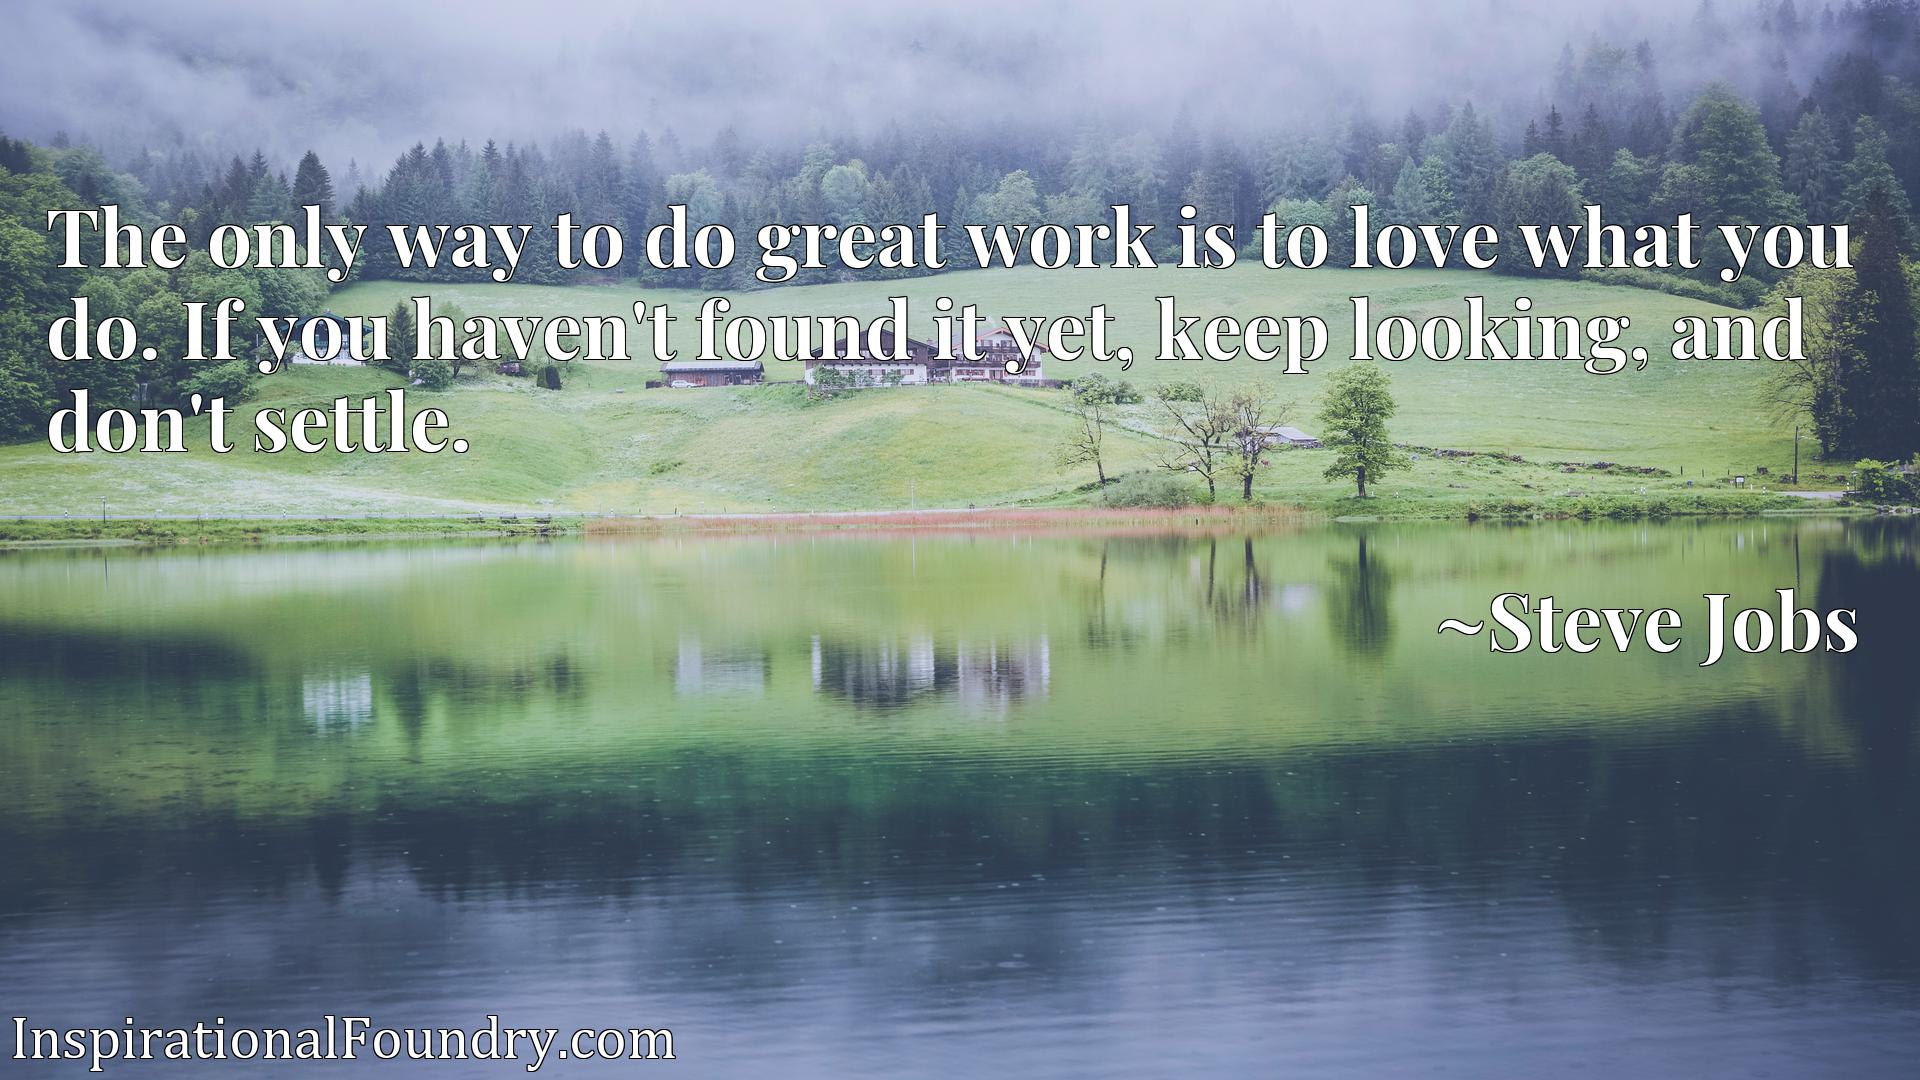 The only way to do great work is to love what you do. If you haven't found it yet, keep looking, and don't settle.